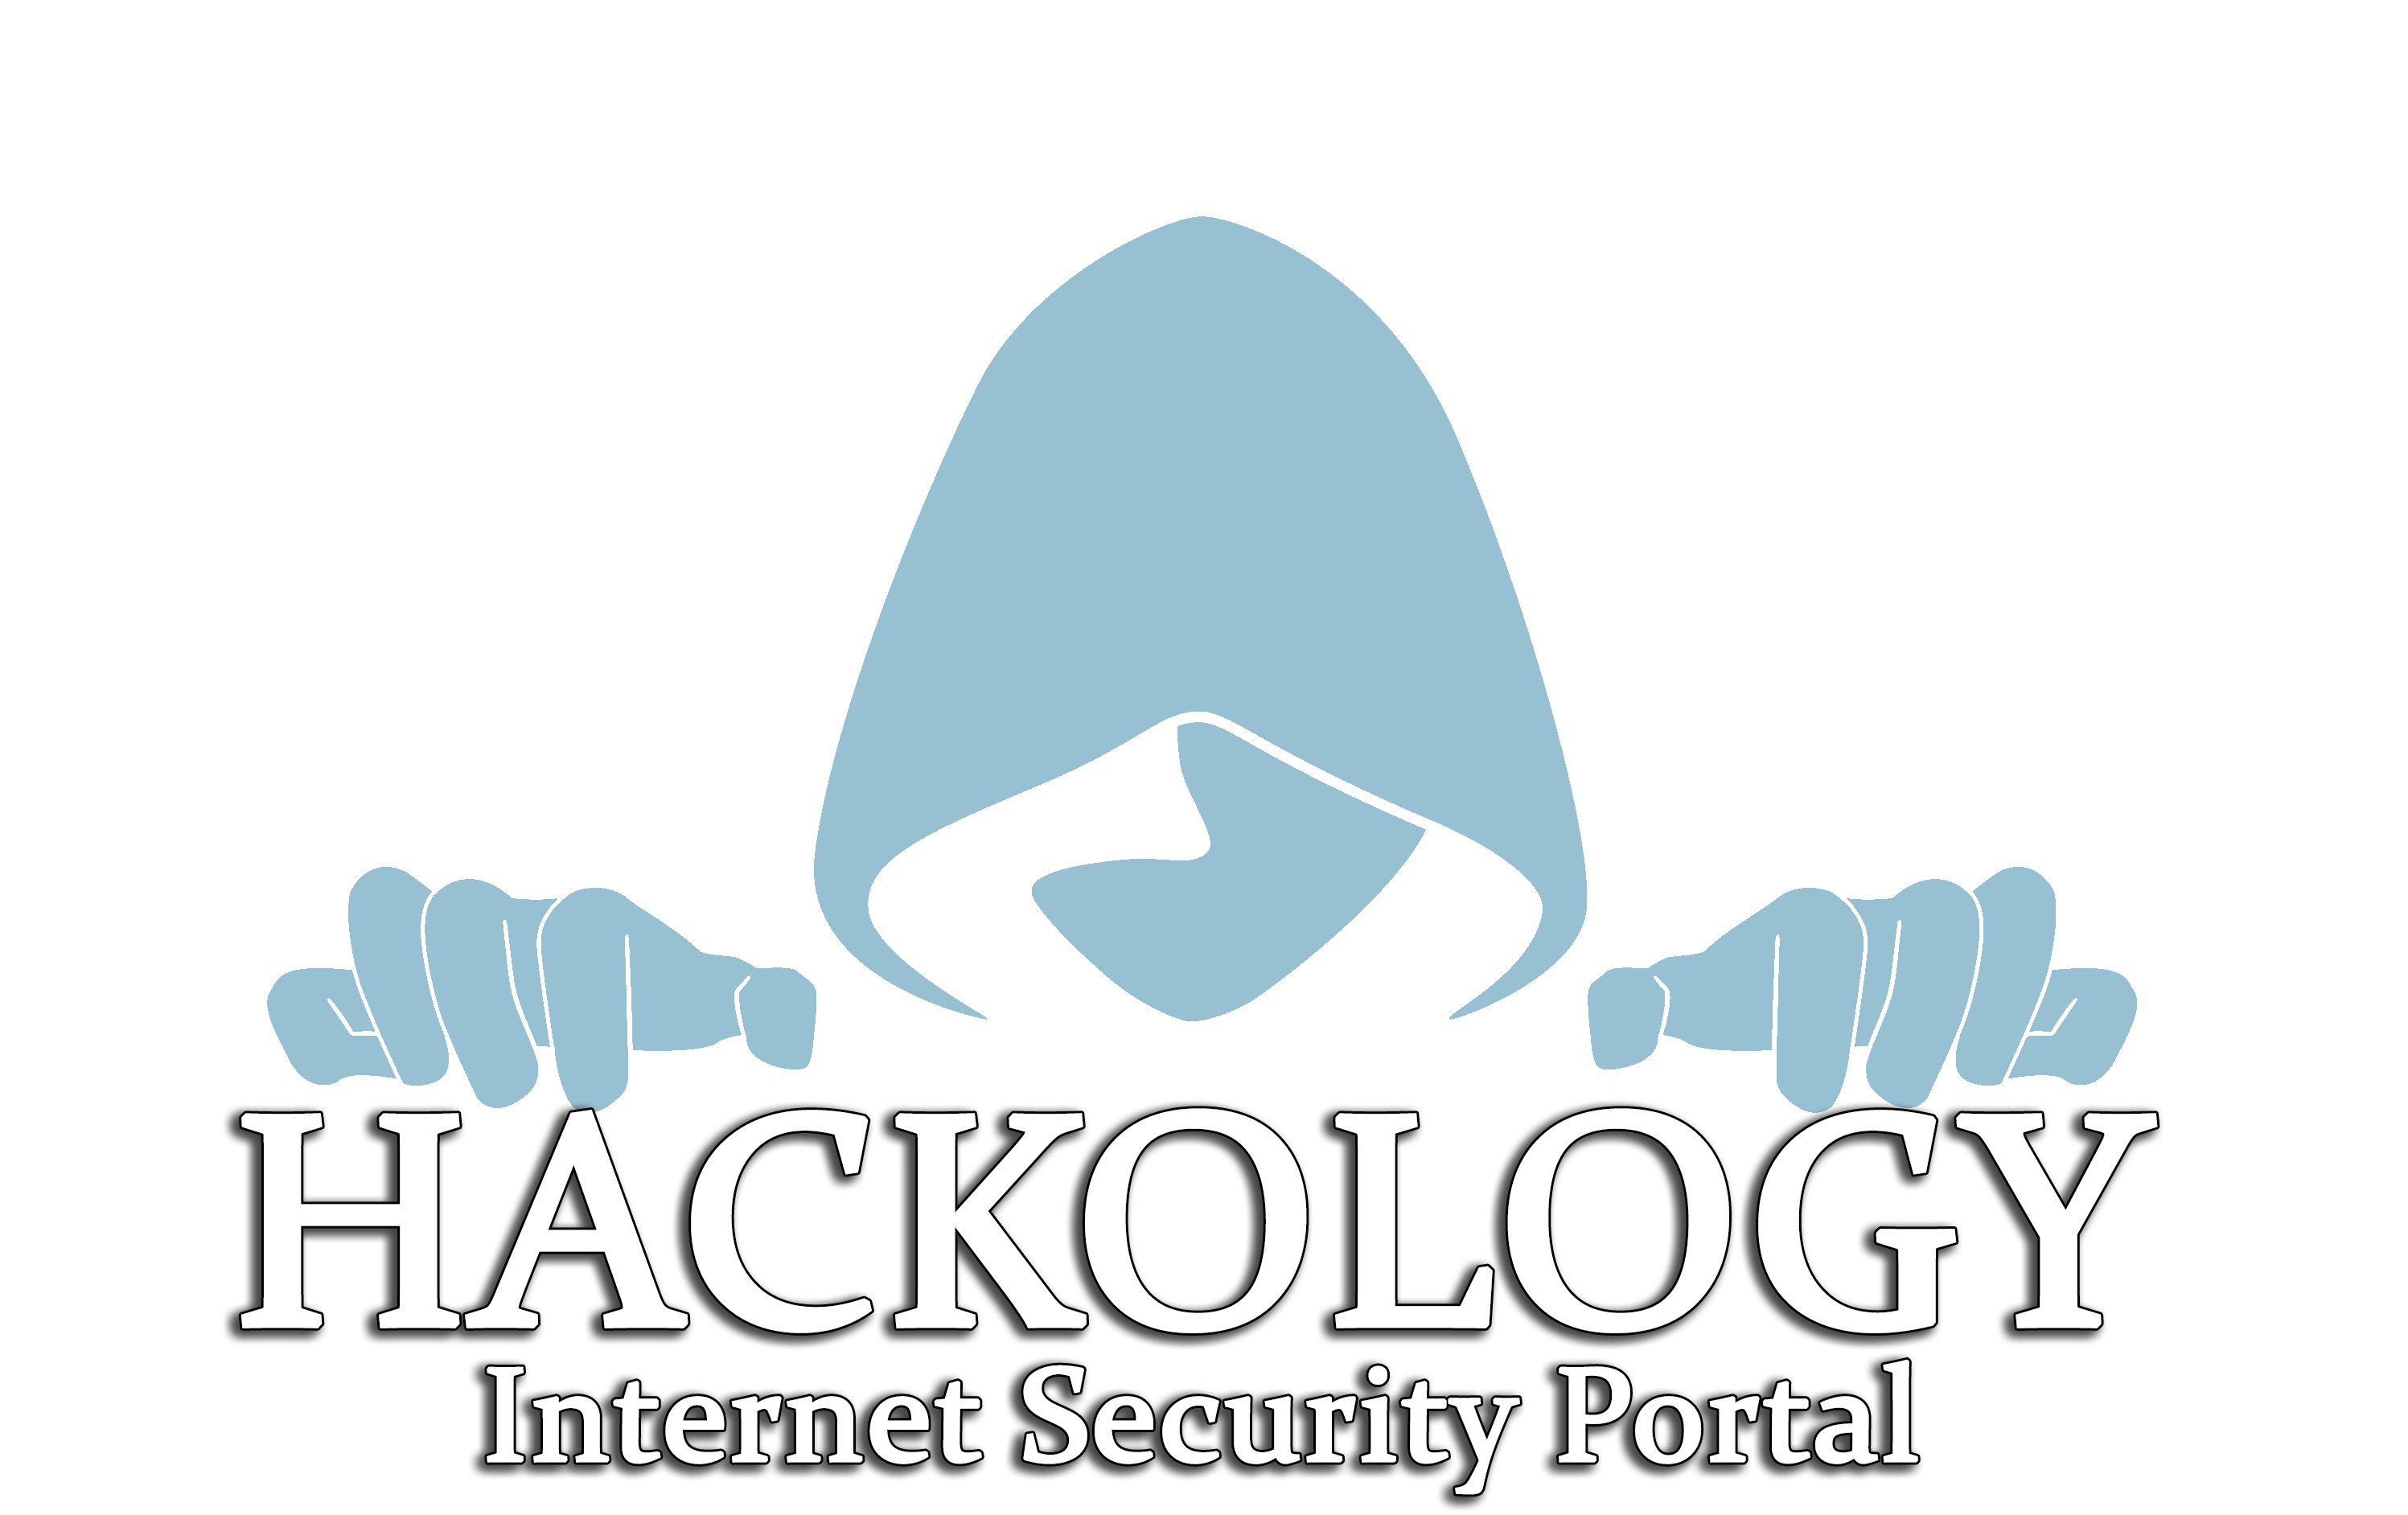 Hackology.co - Everything about Internet Security